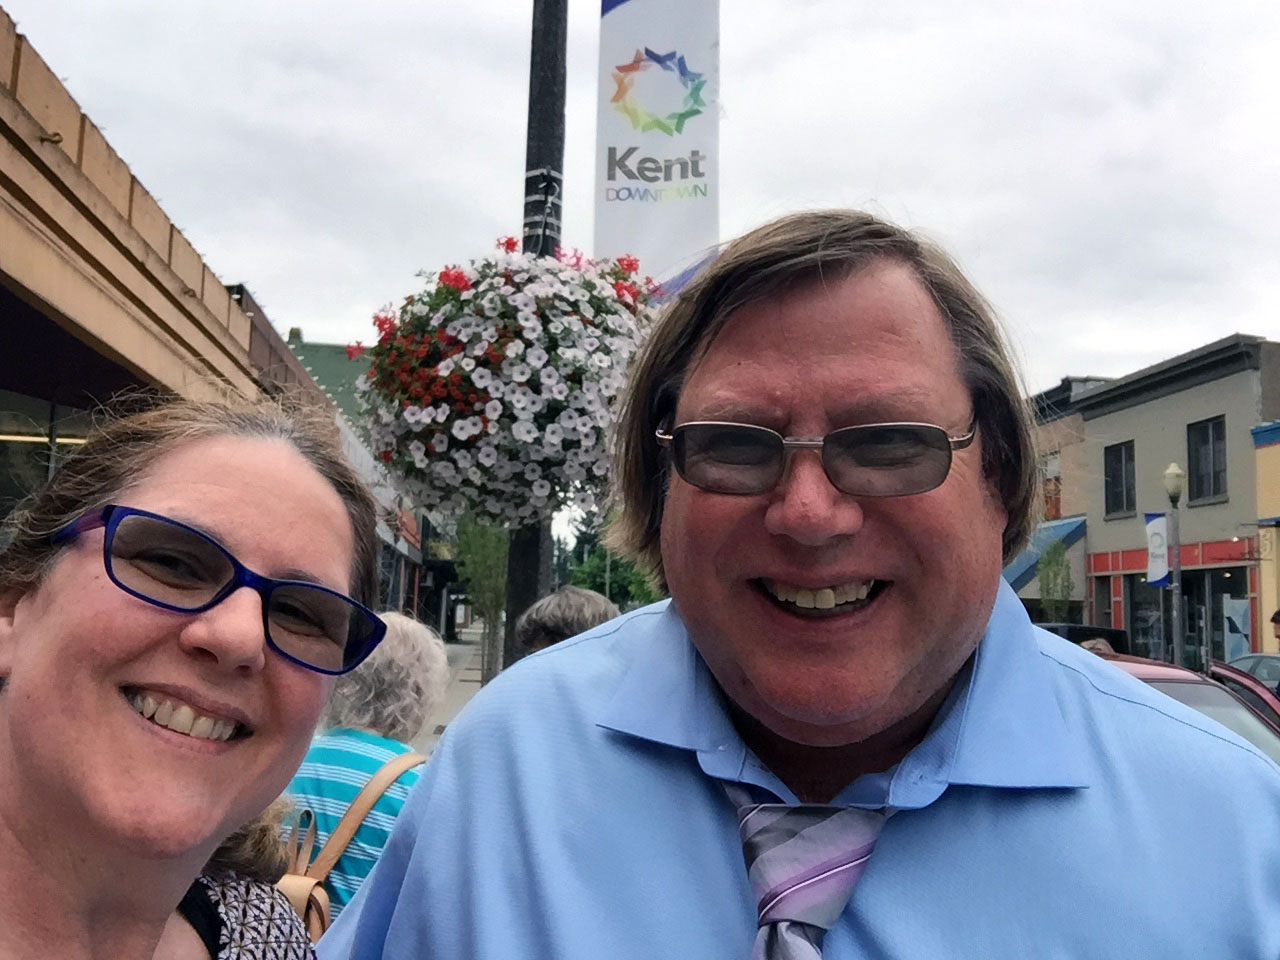 Laurie and Mark smiling in front of a banner that says Kent Downtown